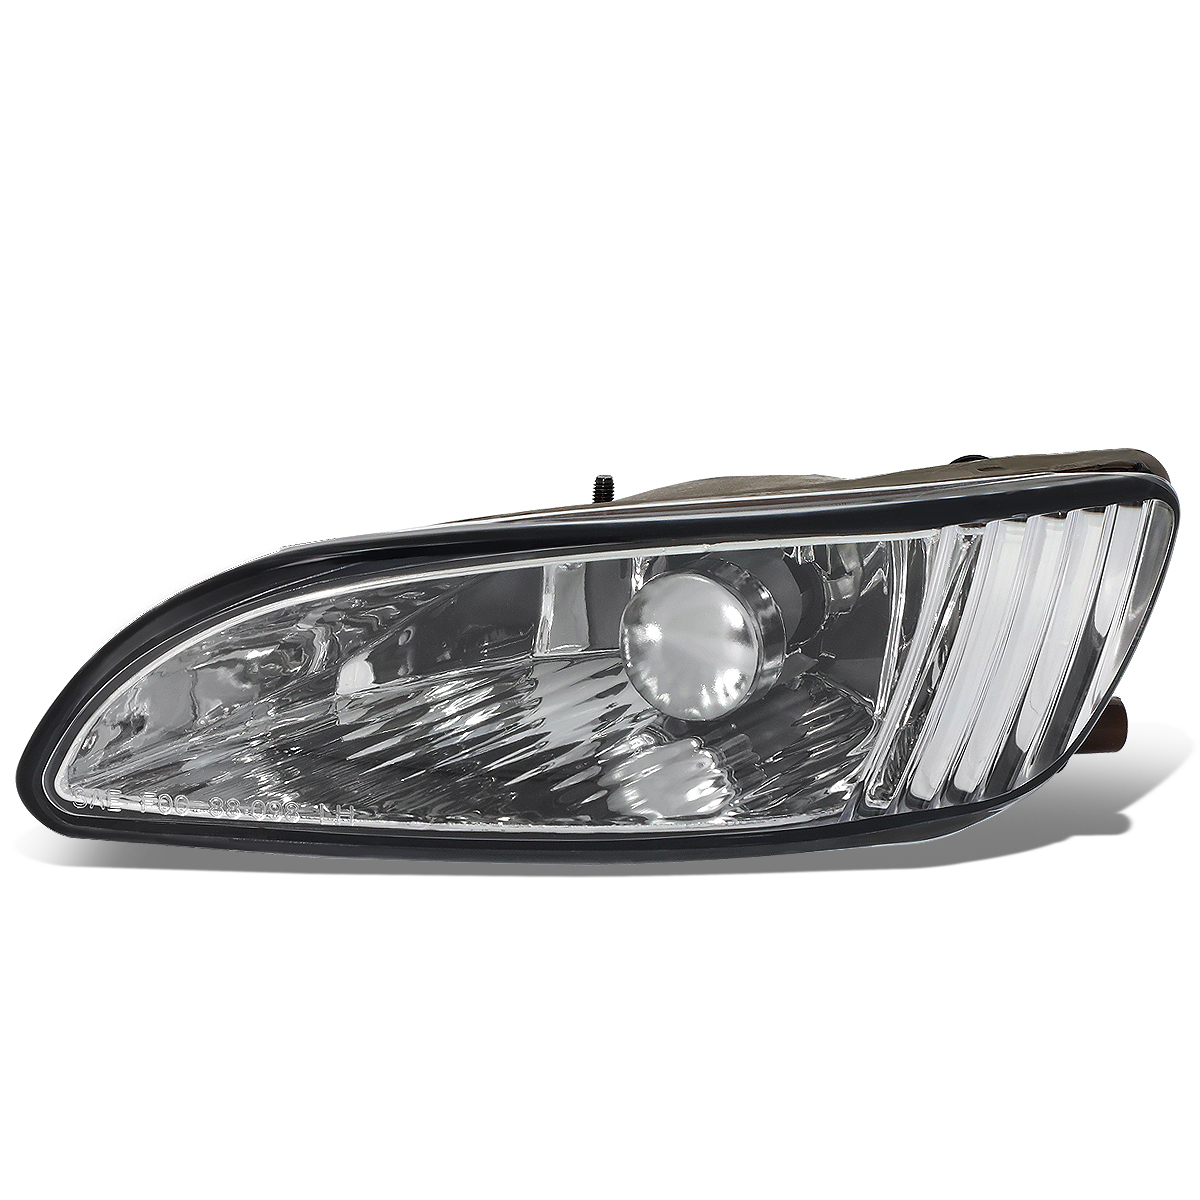 For 04-09 Lexus RX330/RX350 OE Style Driver/Left Side Front Bumper Fog Light/Lamp 05 06 07 08